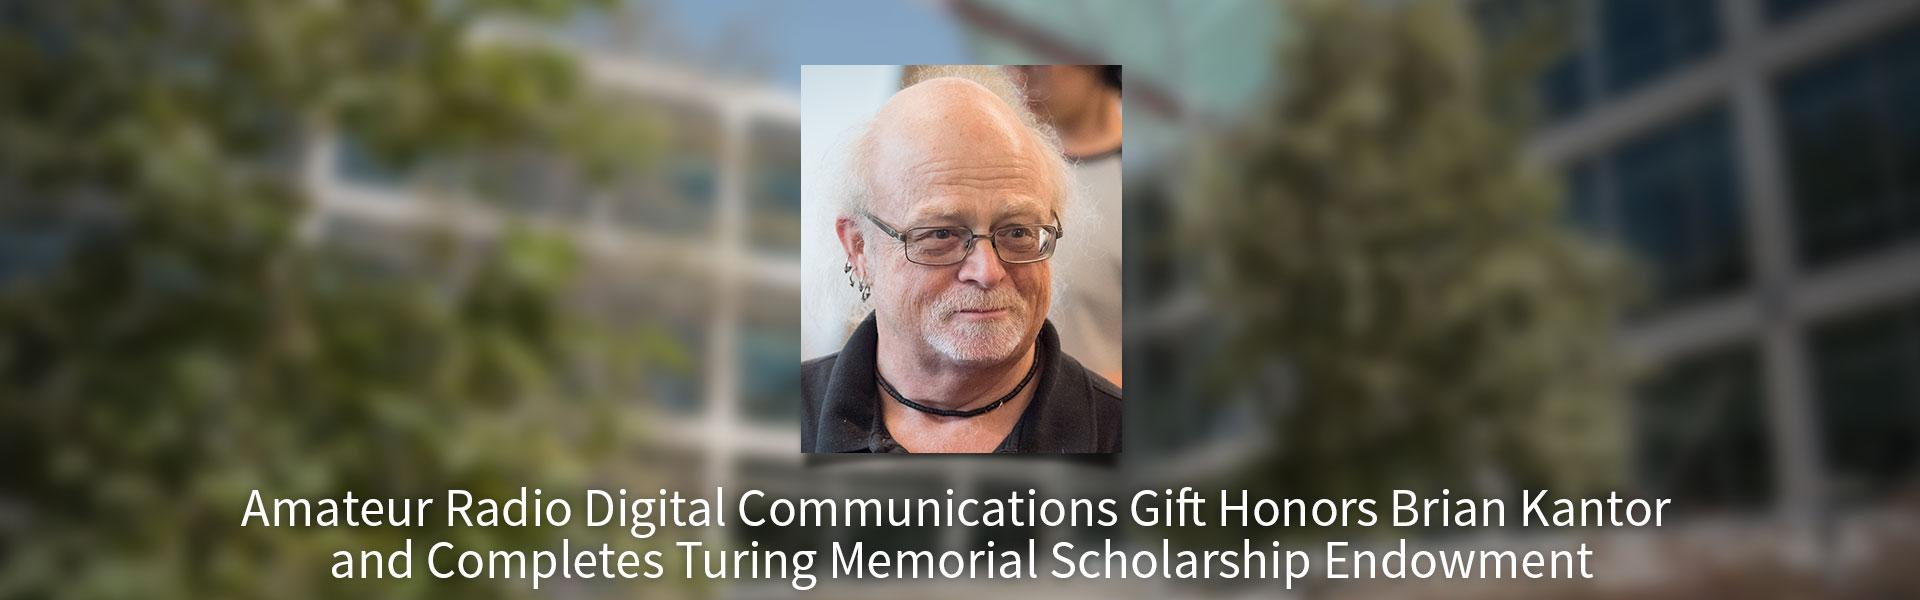 AMATEUR RADIO DIGITAL COMMUNICATIONS COMPLETES TURING SCHOLARSHIP ENDOWMENT